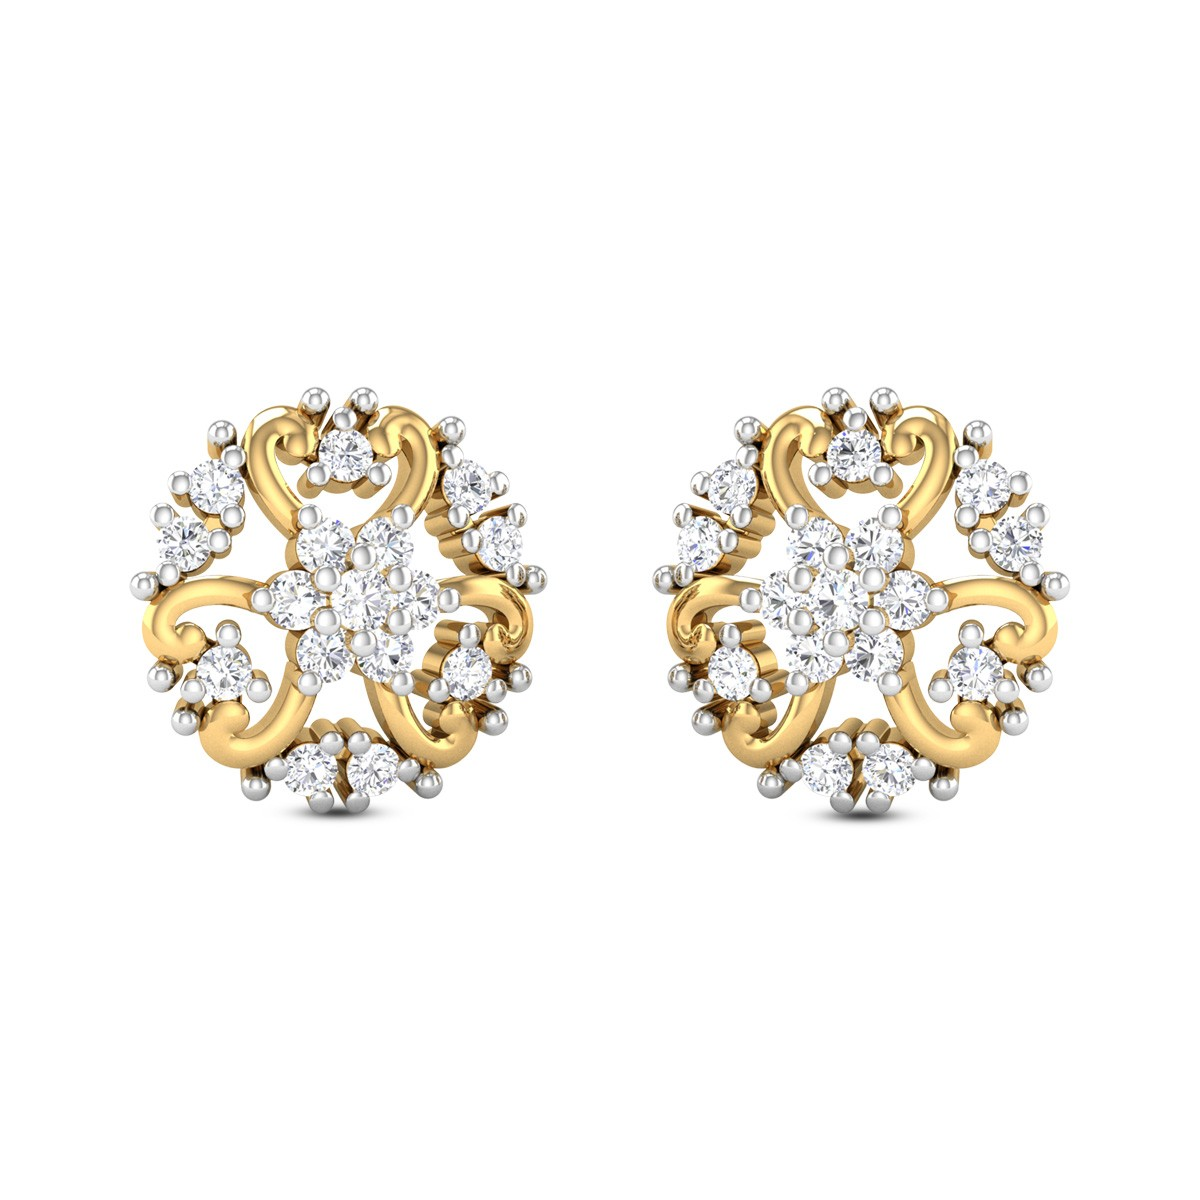 Igraine Diamond Earrings